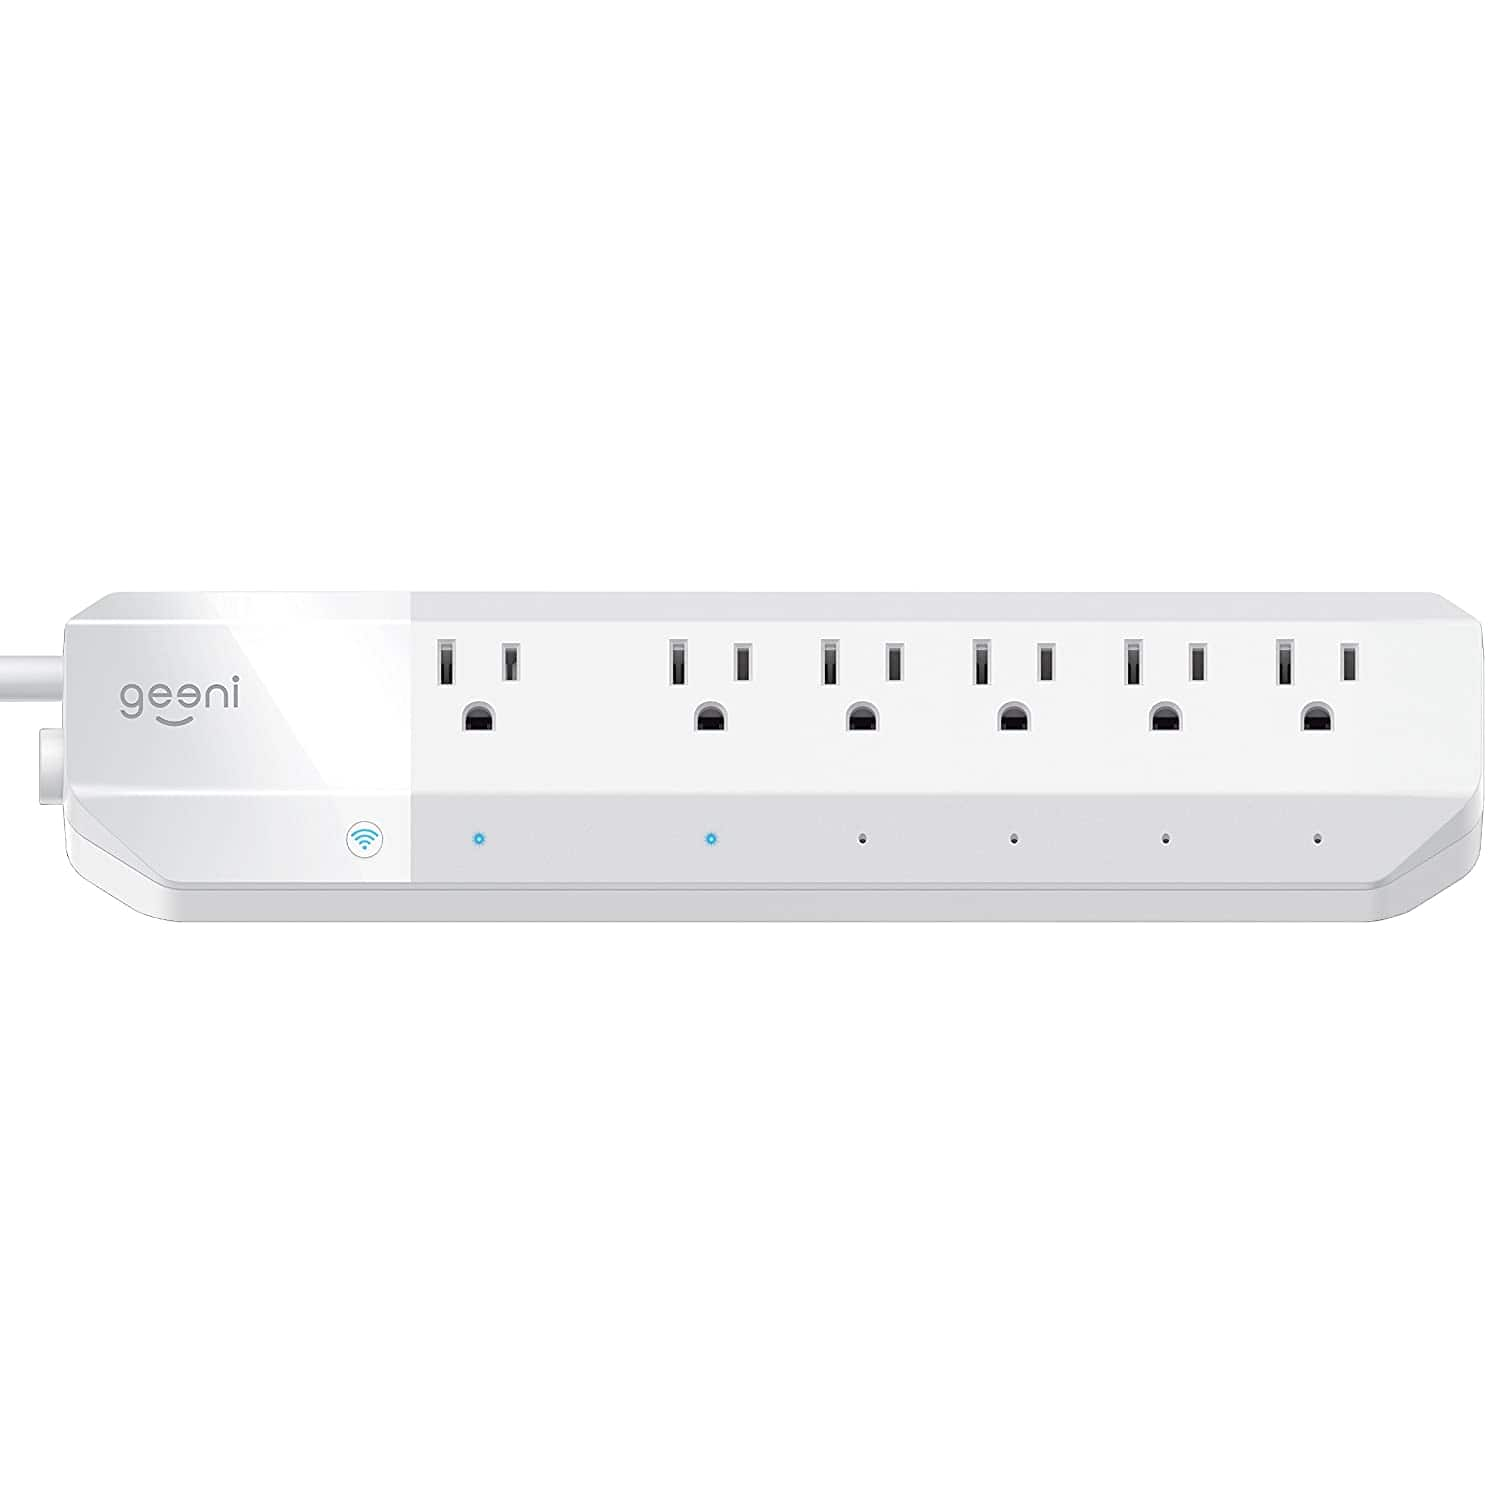 Geeni 4-Outlet + 2 USB, 6-Outlet Smart Surge Protector Power Strip No Hub Wireless Remote Control and Timer $18.79